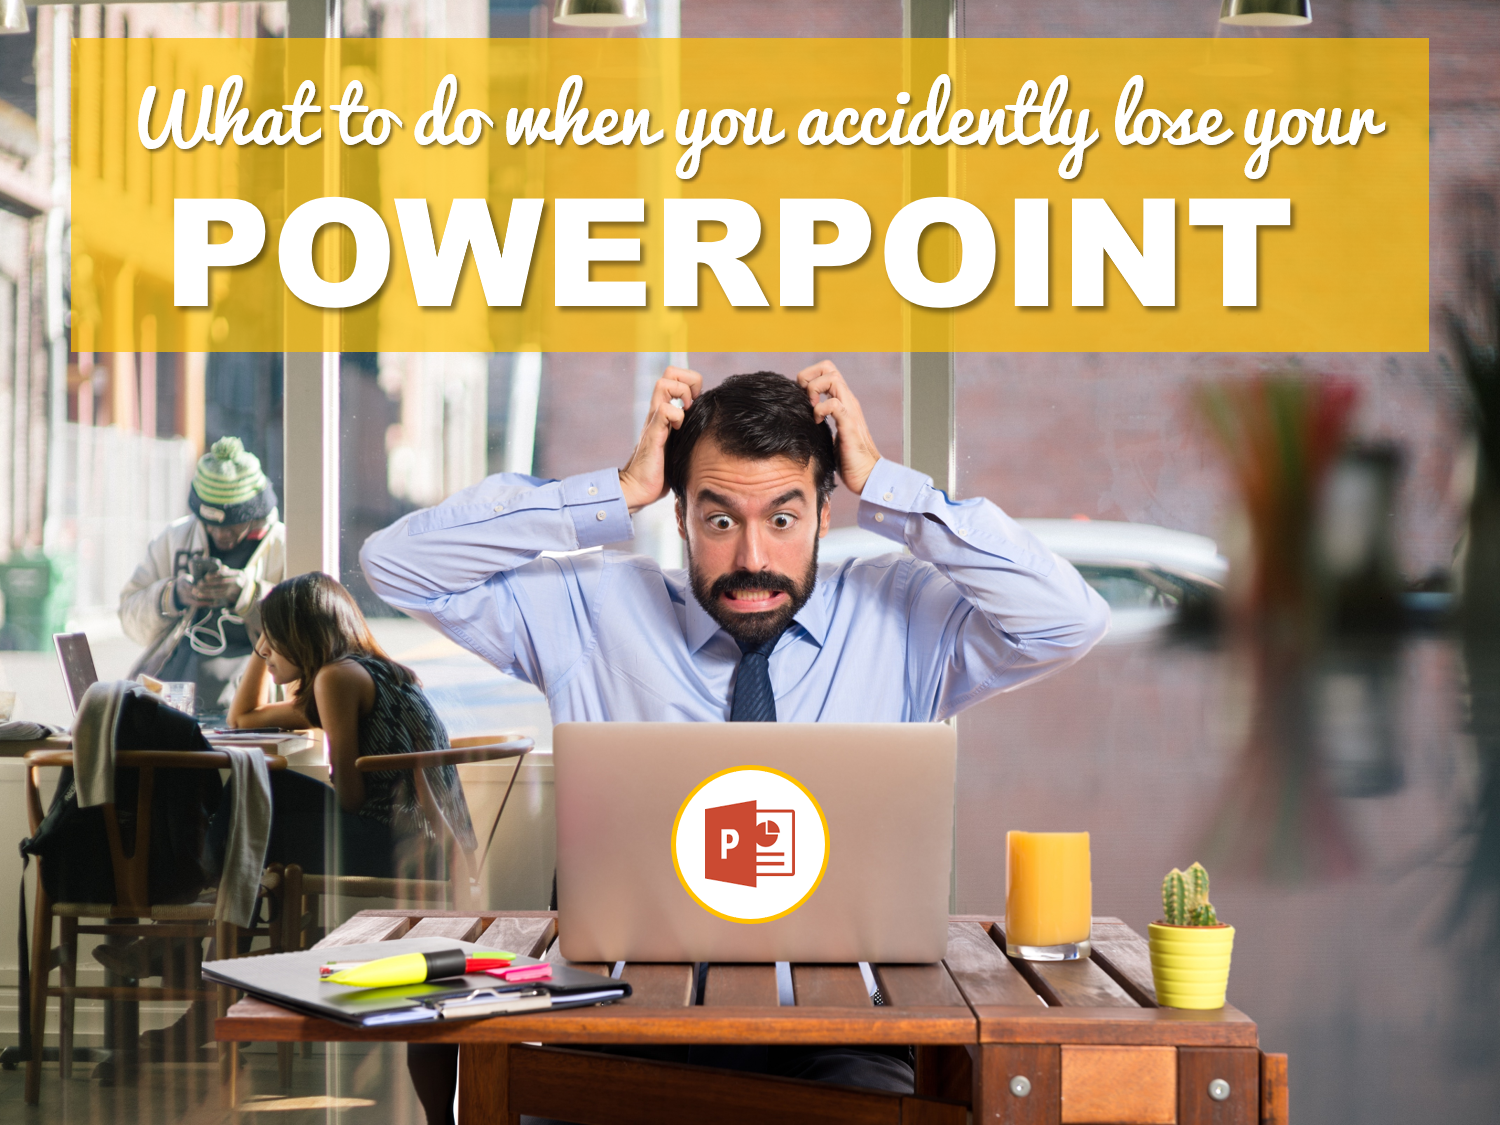 What to do when you accidently lost or deleted your PowerPoint